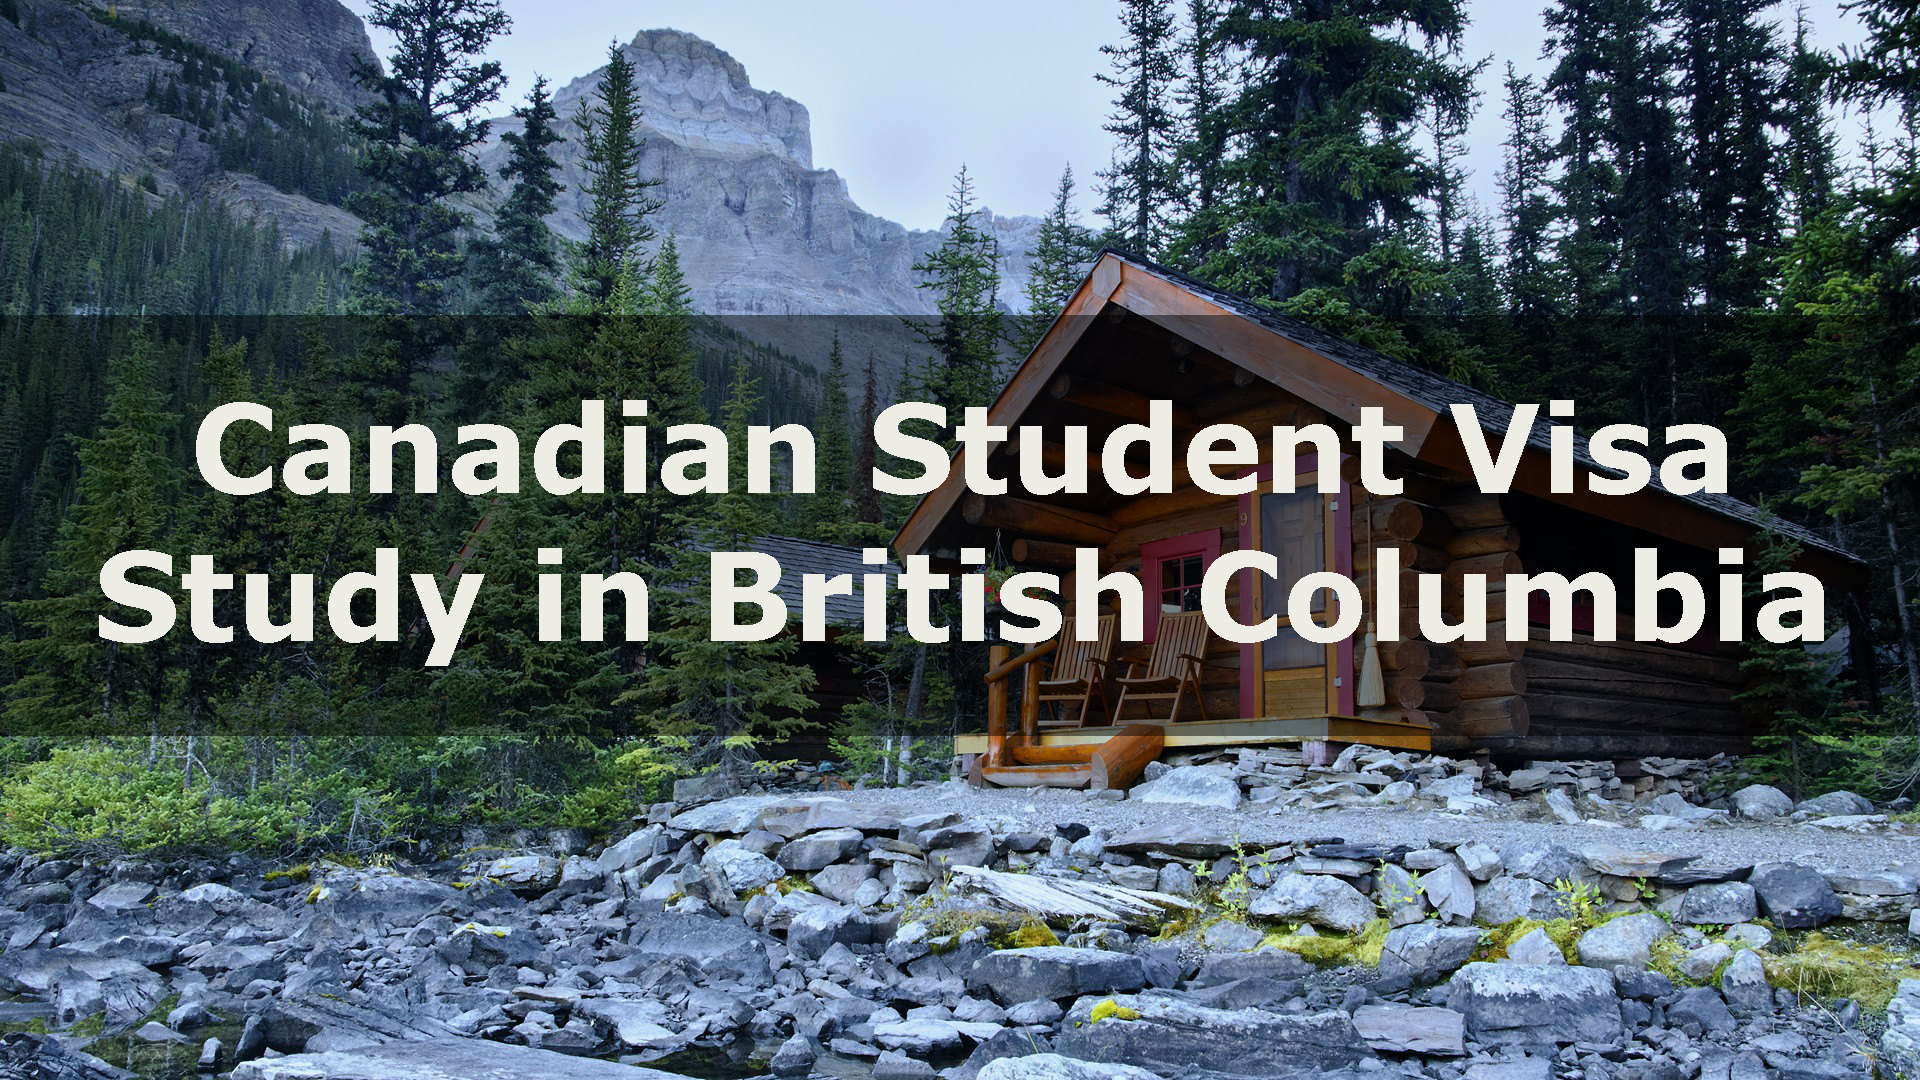 Canadian Student Visa - Study in British Columbia